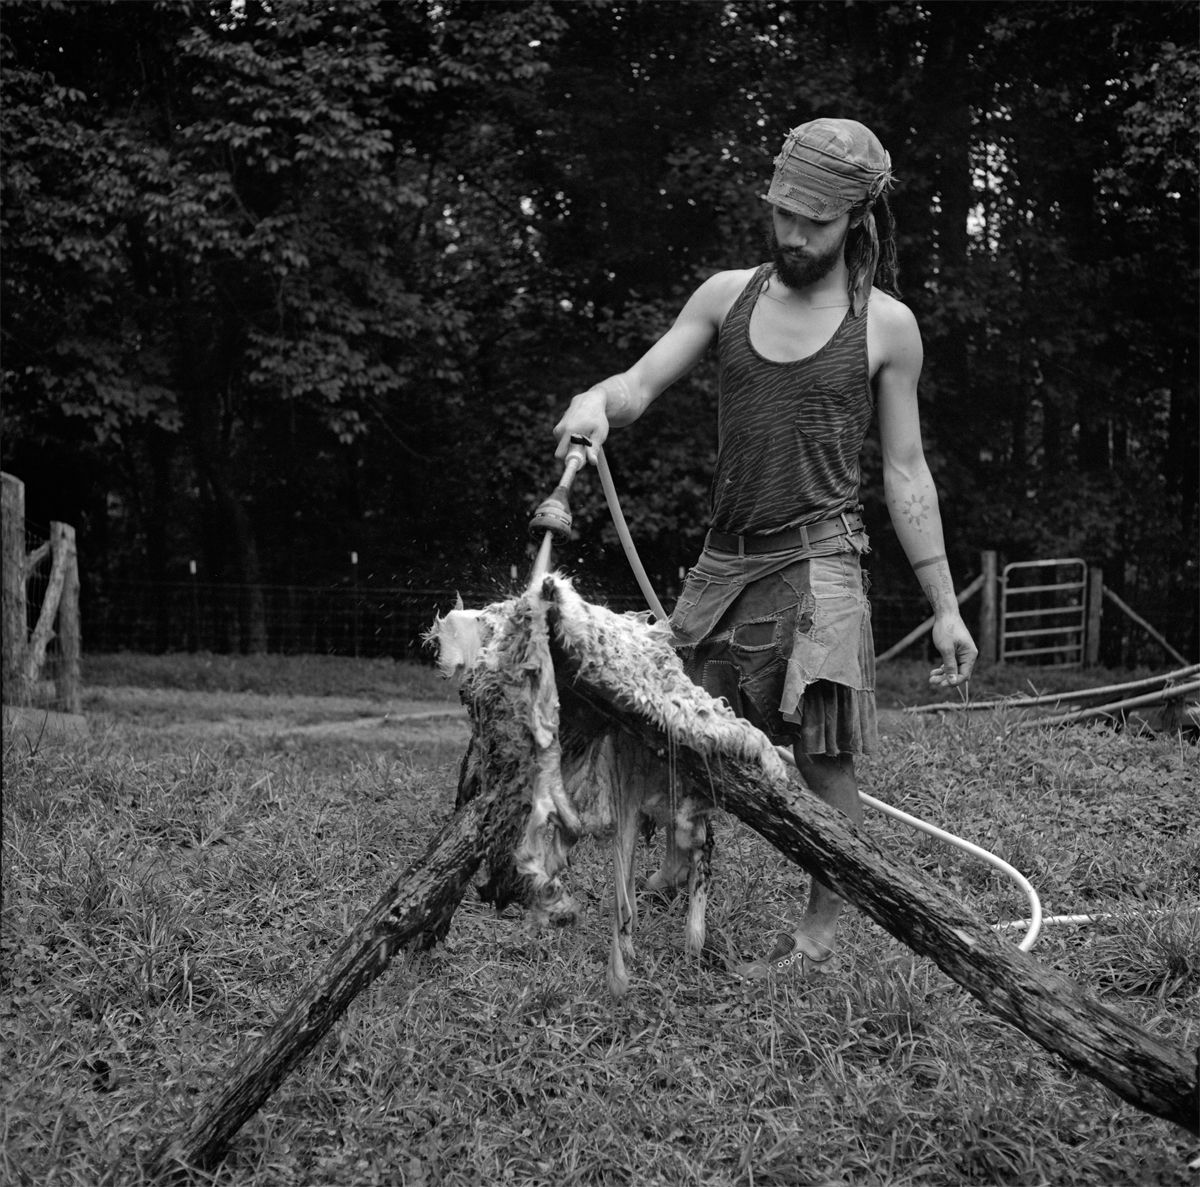 Rob Amberg, Gibberish cleaning sheep hide, Paw Paw, Madison County, NC, 2014, Archival Pigment Print, 5 x 5 (image size), Edition of 10, Photography, Photography Gallery